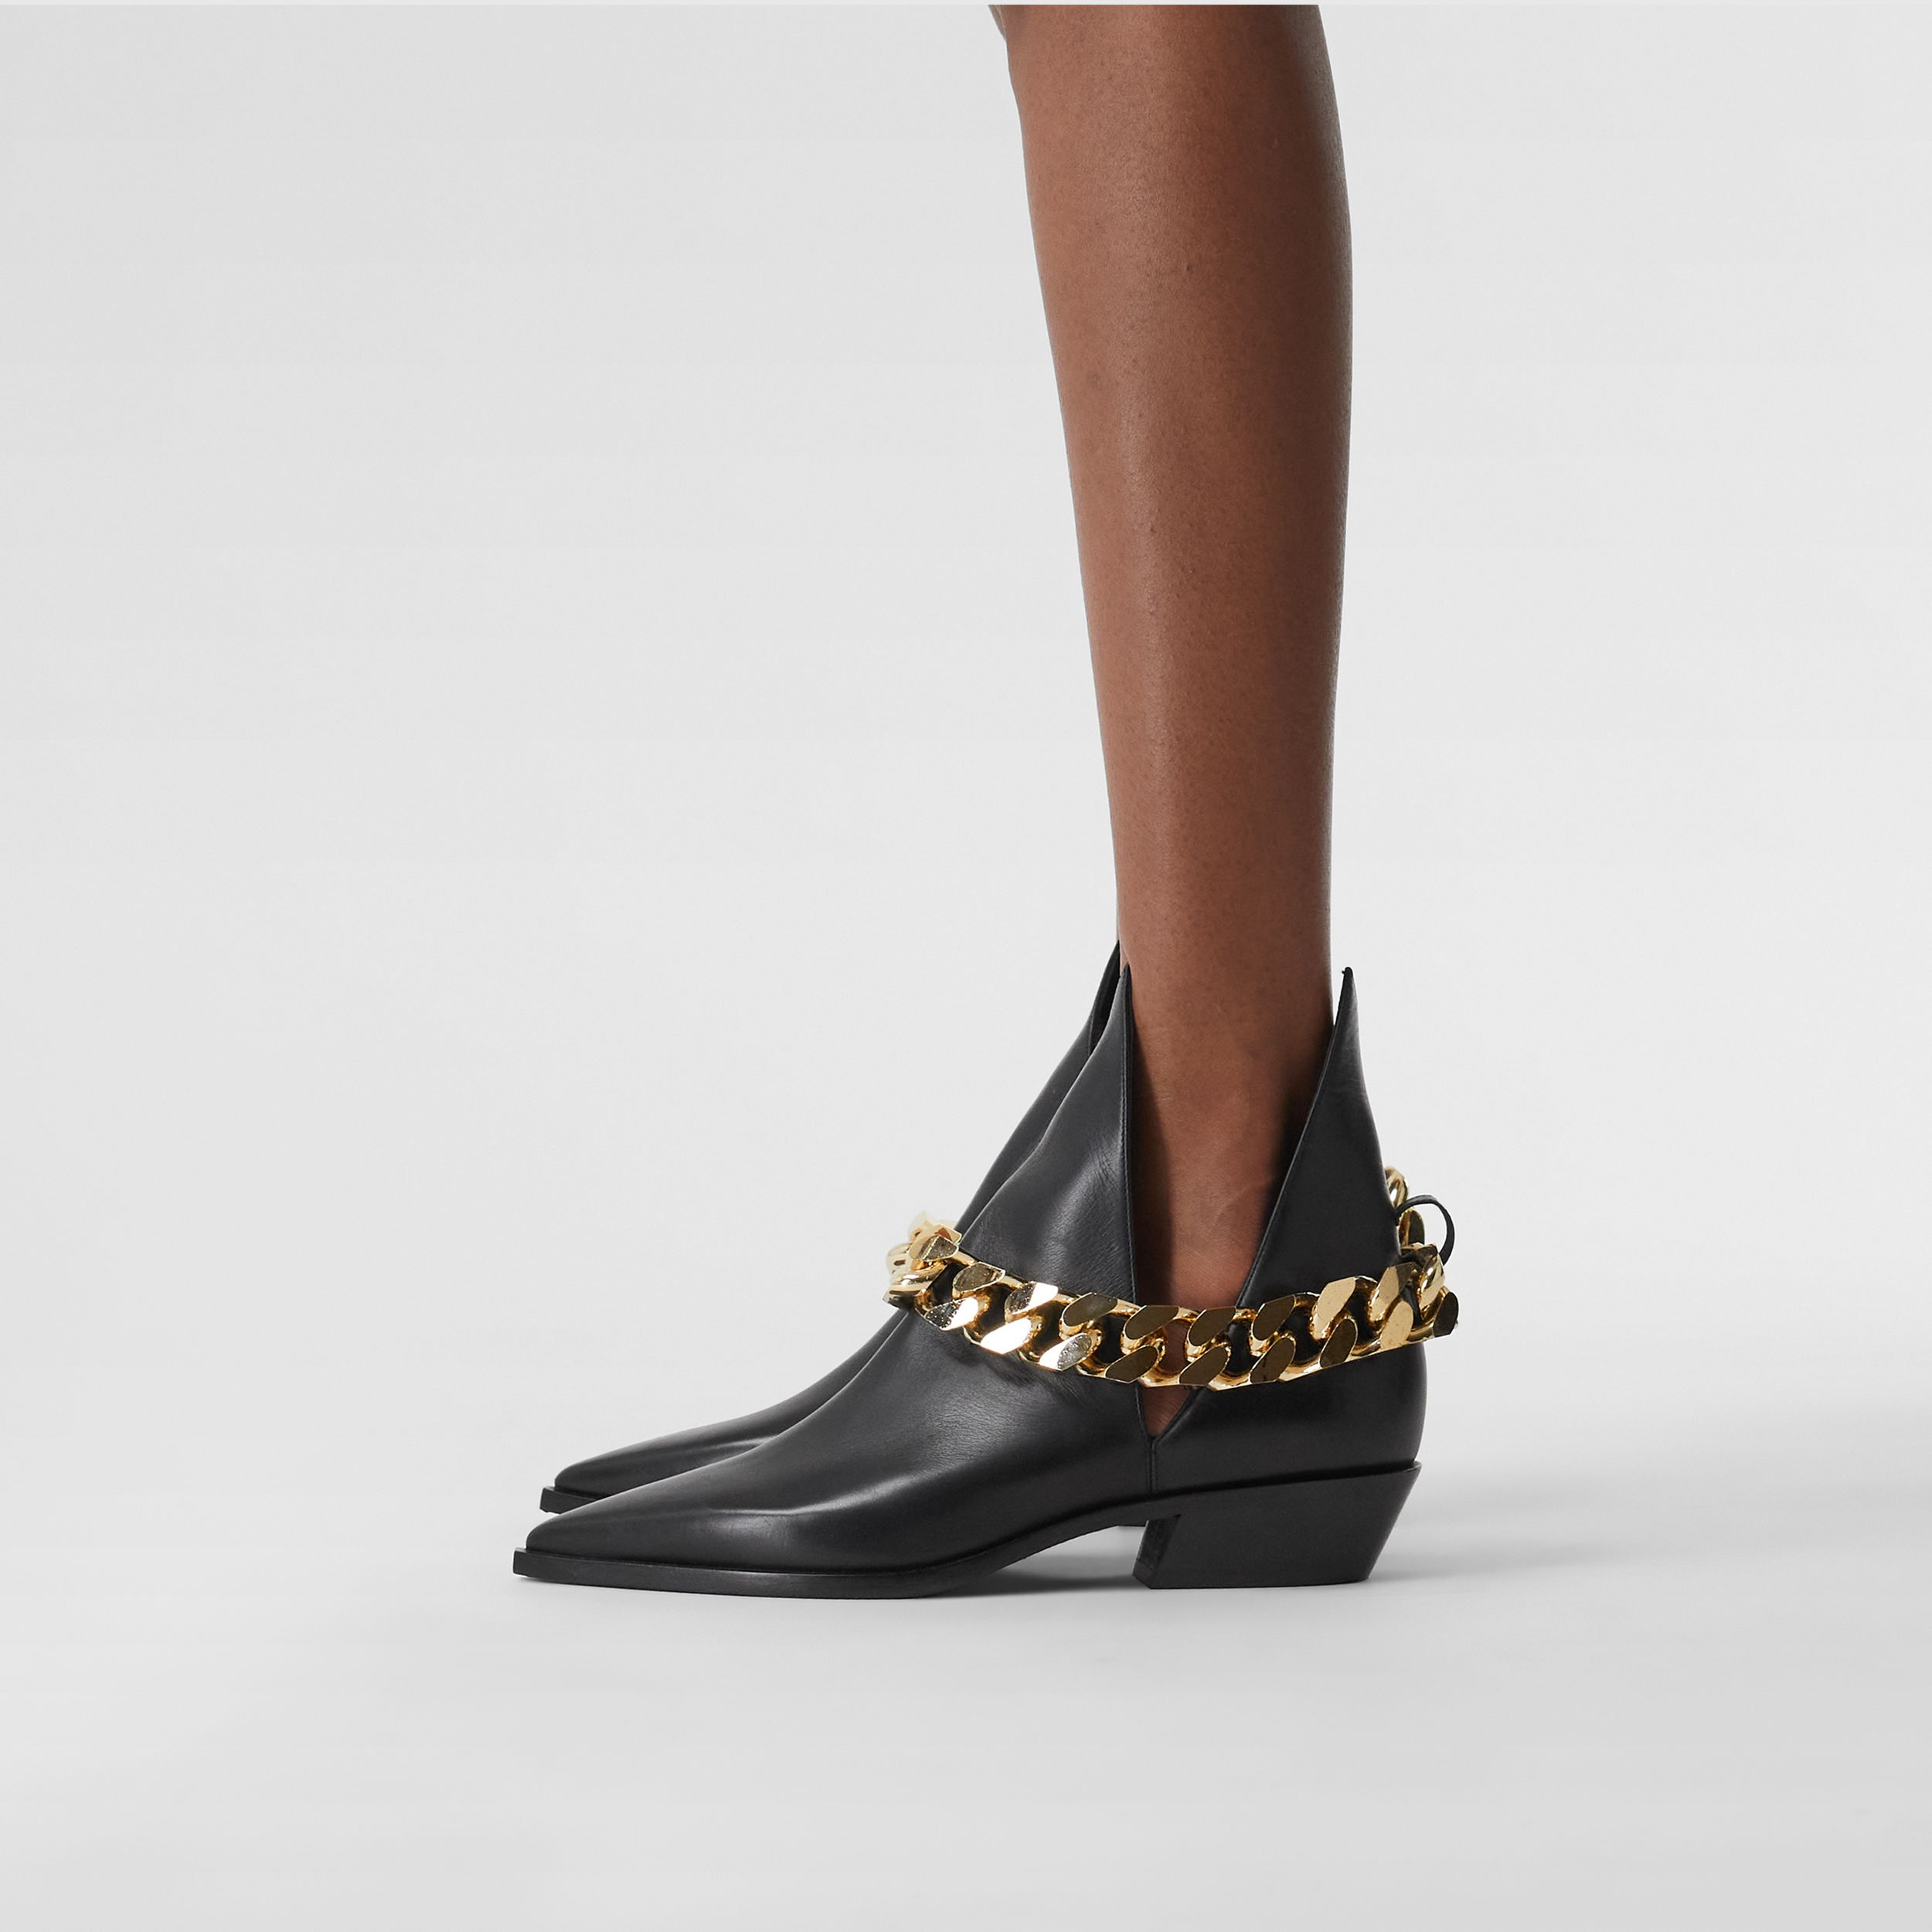 Chain Detail Leather Ankle Boots in Black - Women | Burberry - 3